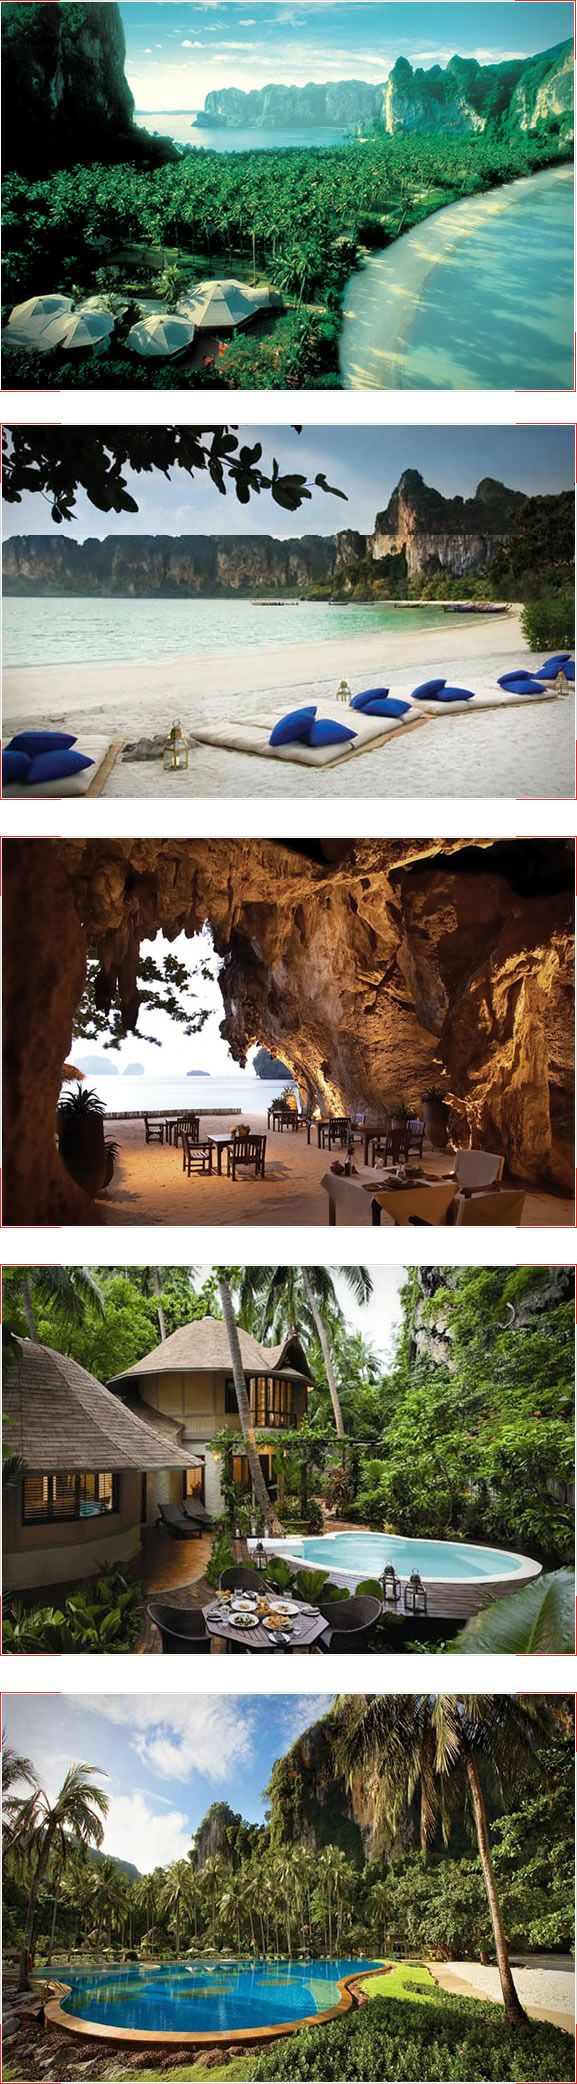 RAYAVADEE RESORT | THAILAND. Honeymoon spot? --> yes please! Now just need to find and right man